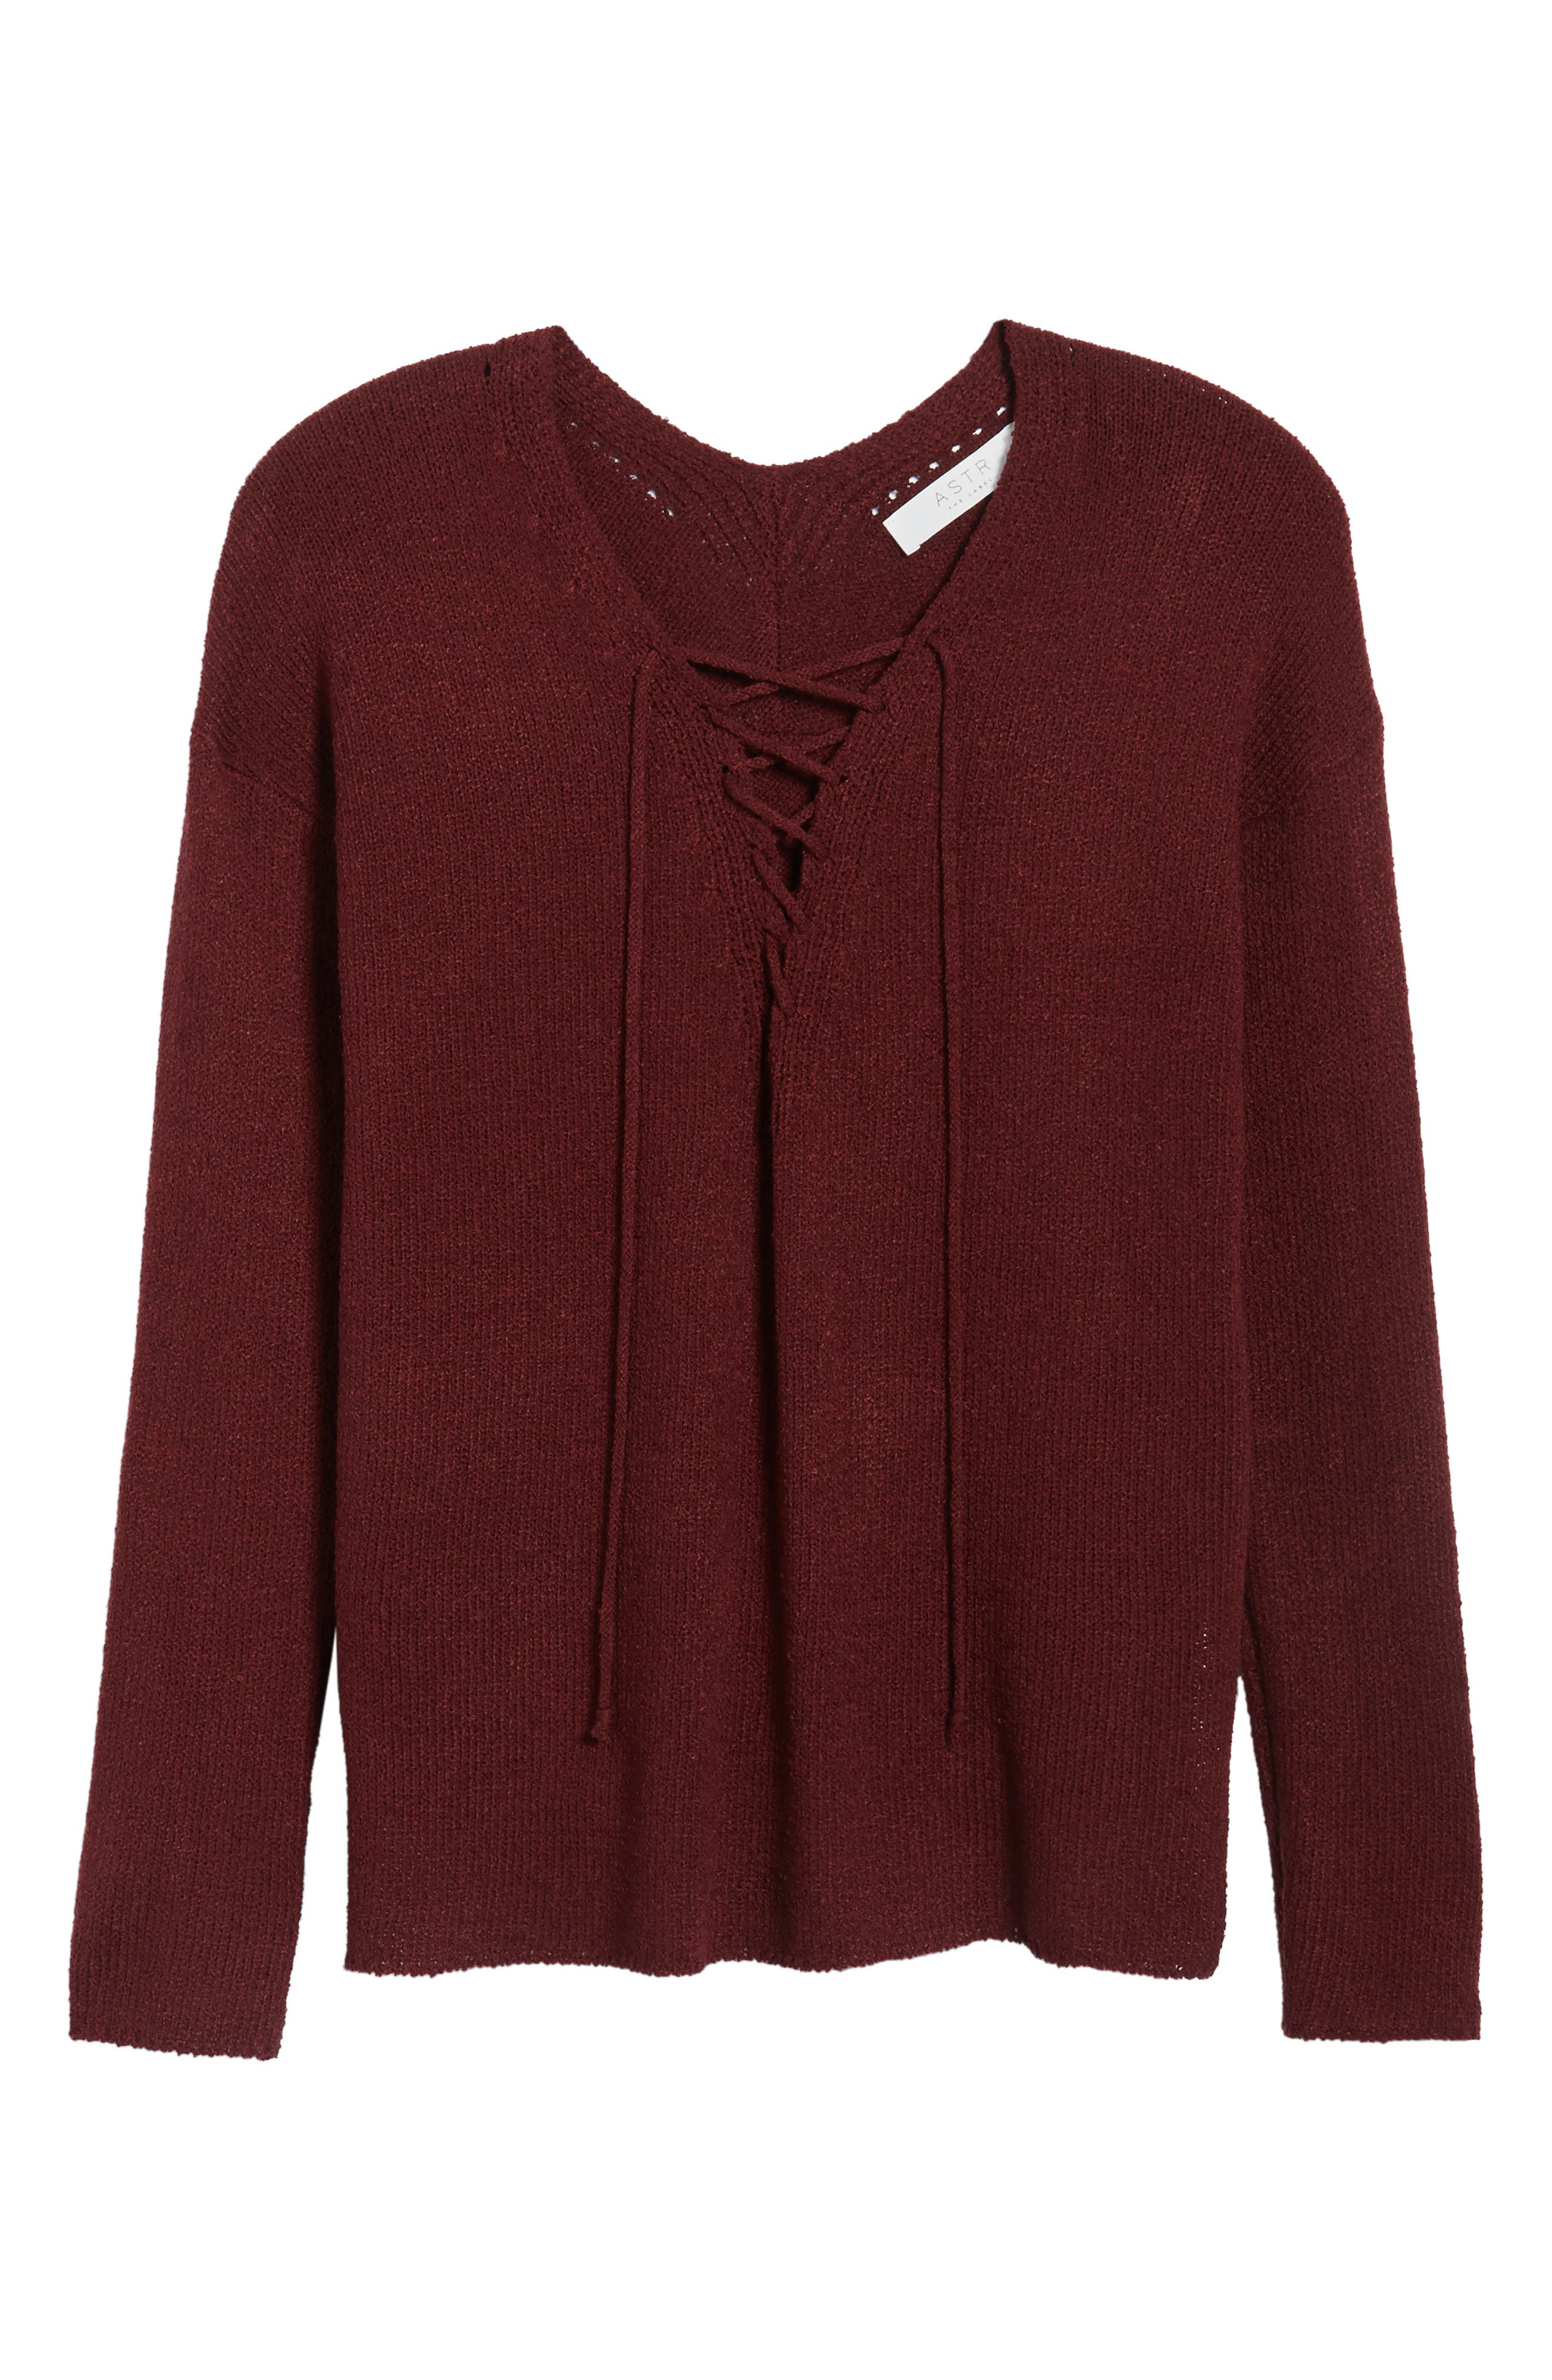 ASTR Lace-Up Sweater,                             Alternate thumbnail 6, color,                             930